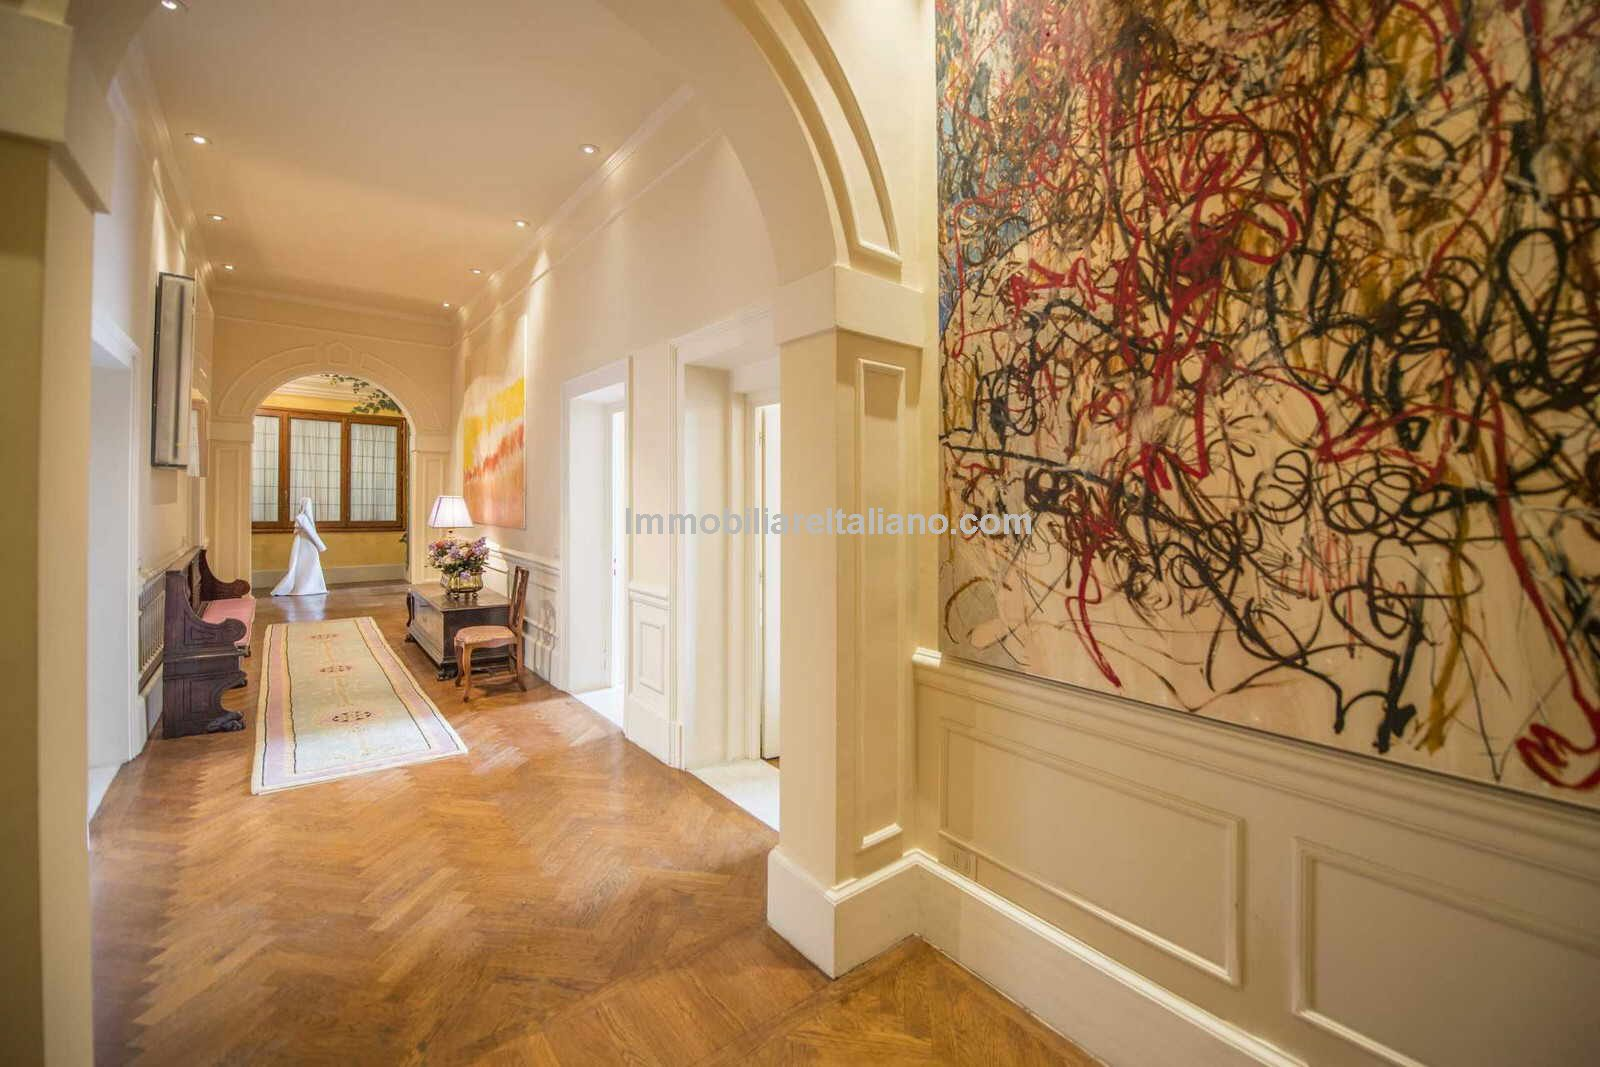 Apartment for sale Central Florence Italy Immobiliare Italiano